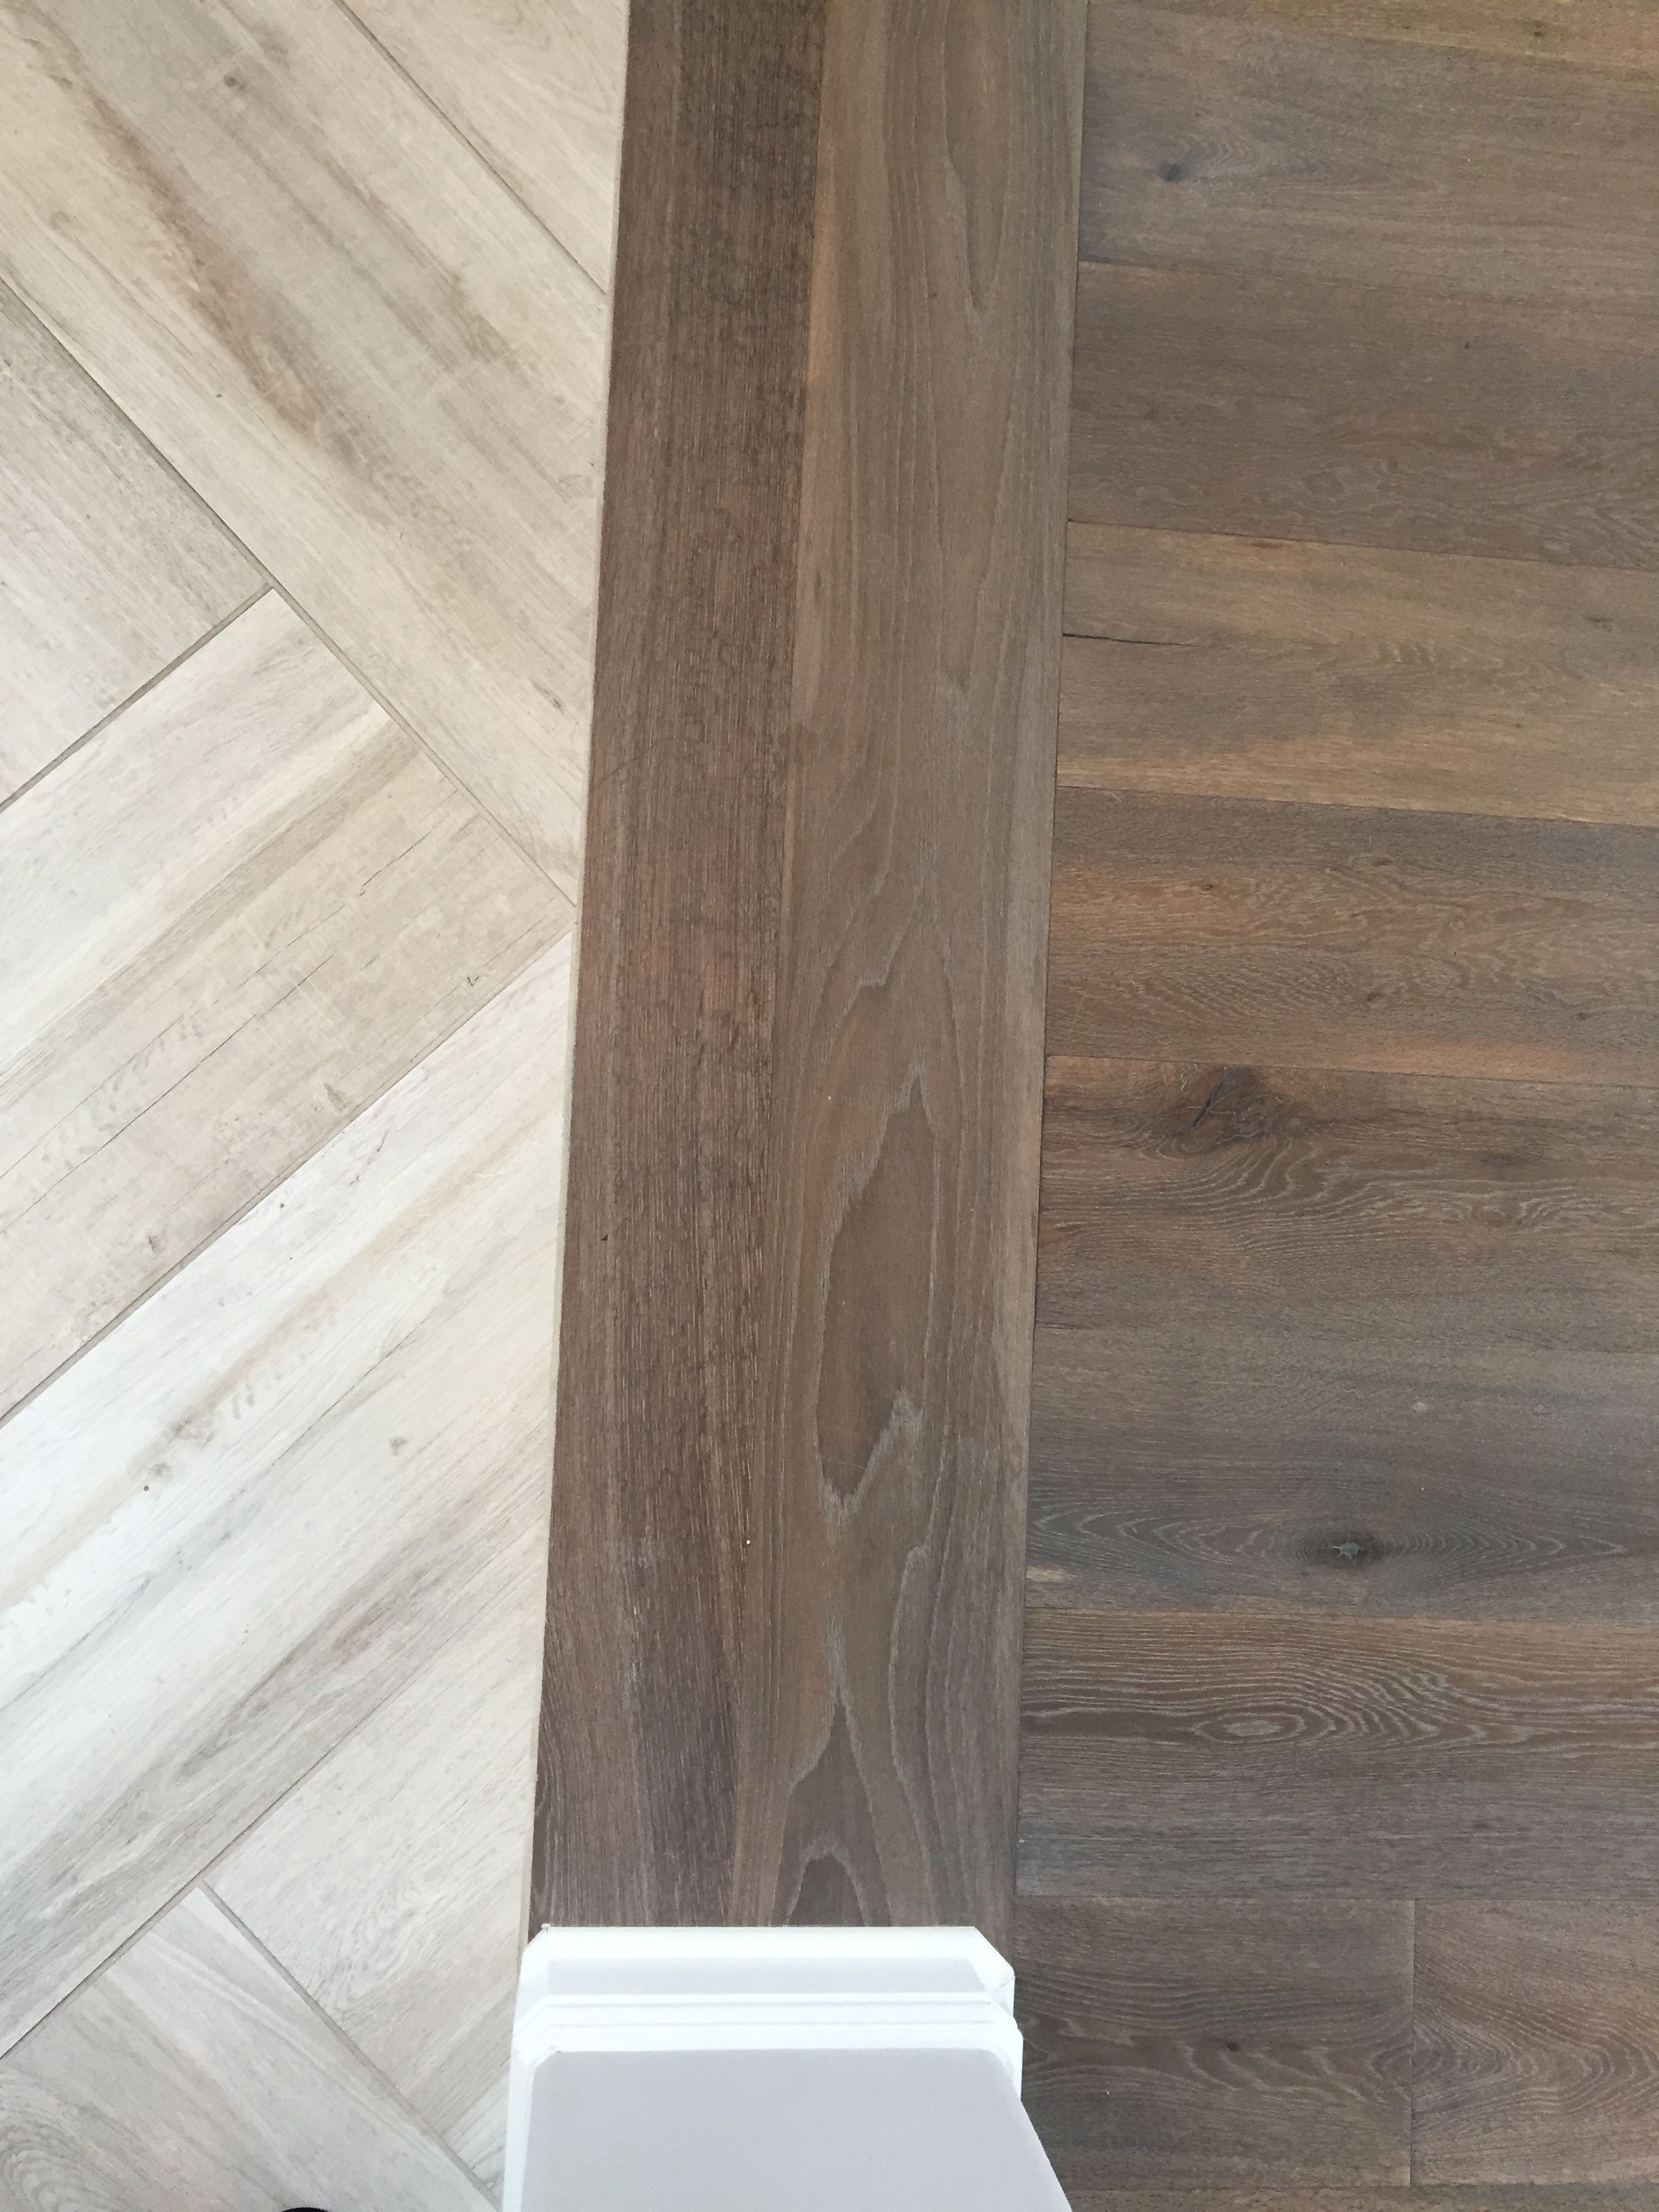 hardwood floor layout pattern of floor transition laminate to herringbone tile pattern model with regard to floor transition laminate to herringbone tile pattern herringbone tile pattern herringbone wood floor